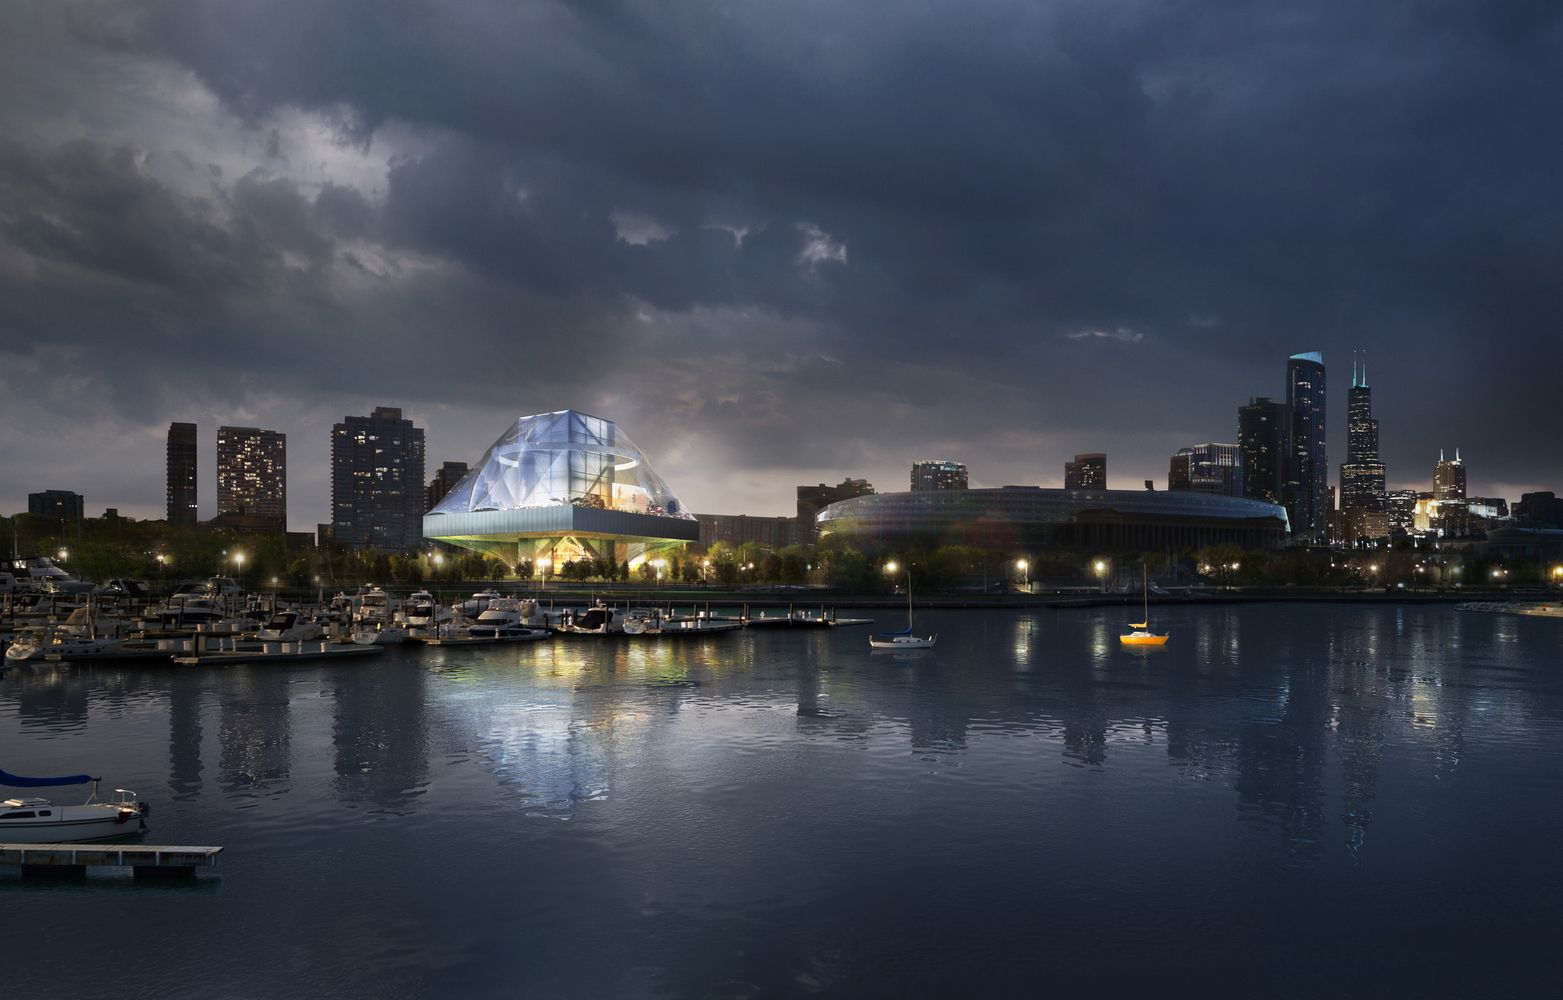 OMA Releases Images of Alternative Design for Lucas Museum,Courtesy of OMA New York